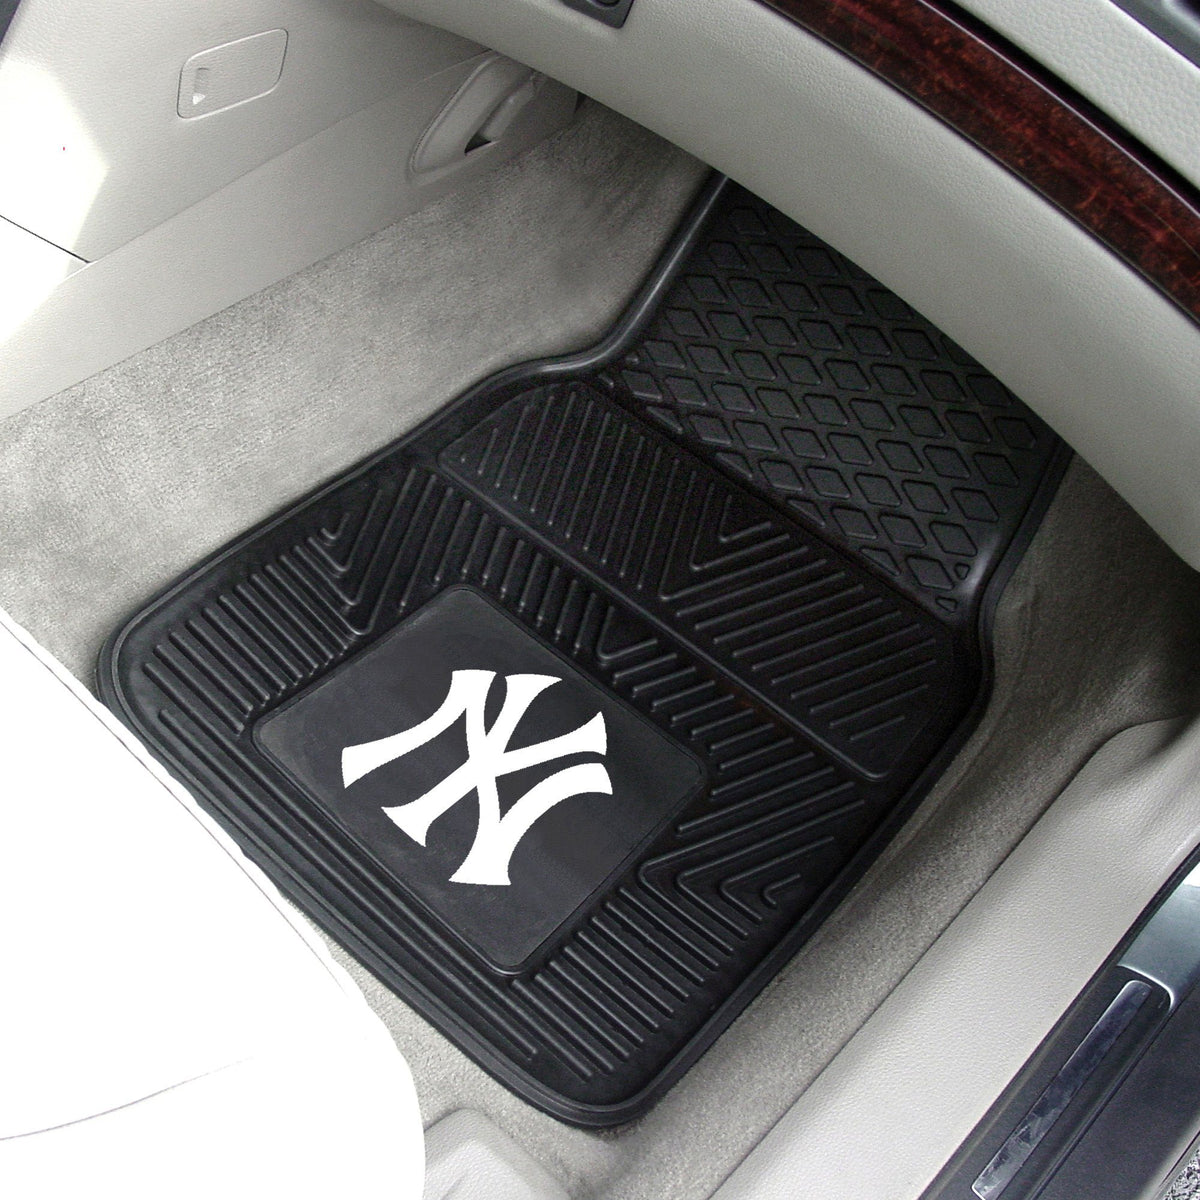 MLB - Vinyl Car Mat, 2-Piece Set MLB Mats, Front Car Mats, 2-pc Vinyl Car Mat Set, MLB, Auto Fan Mats New York Yankees